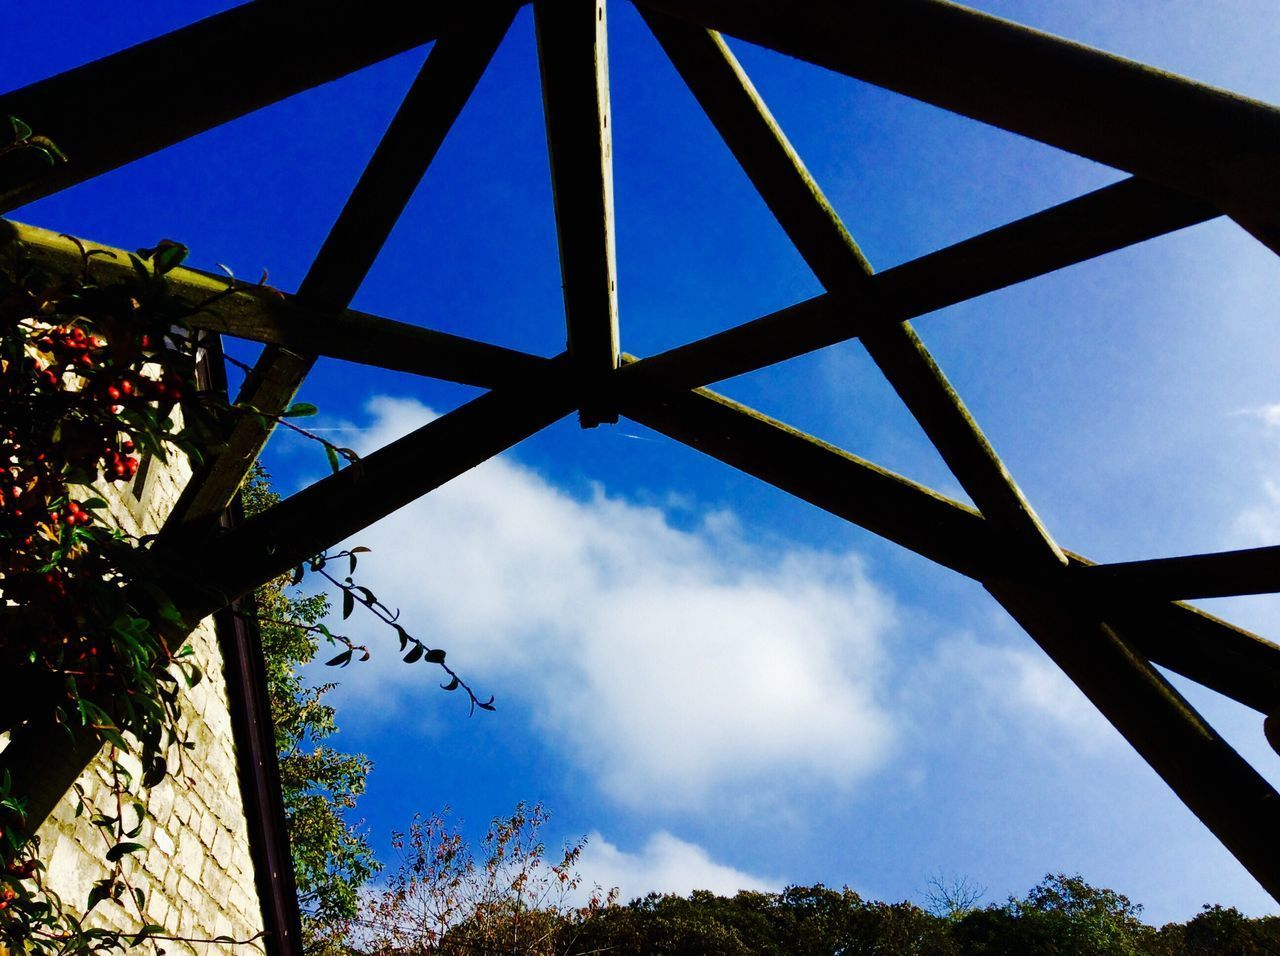 Low Angle View Sky No People Growth Day Built Structure Nature Tree Architecture Indoors  Close-up Greenhouse Blue Sky